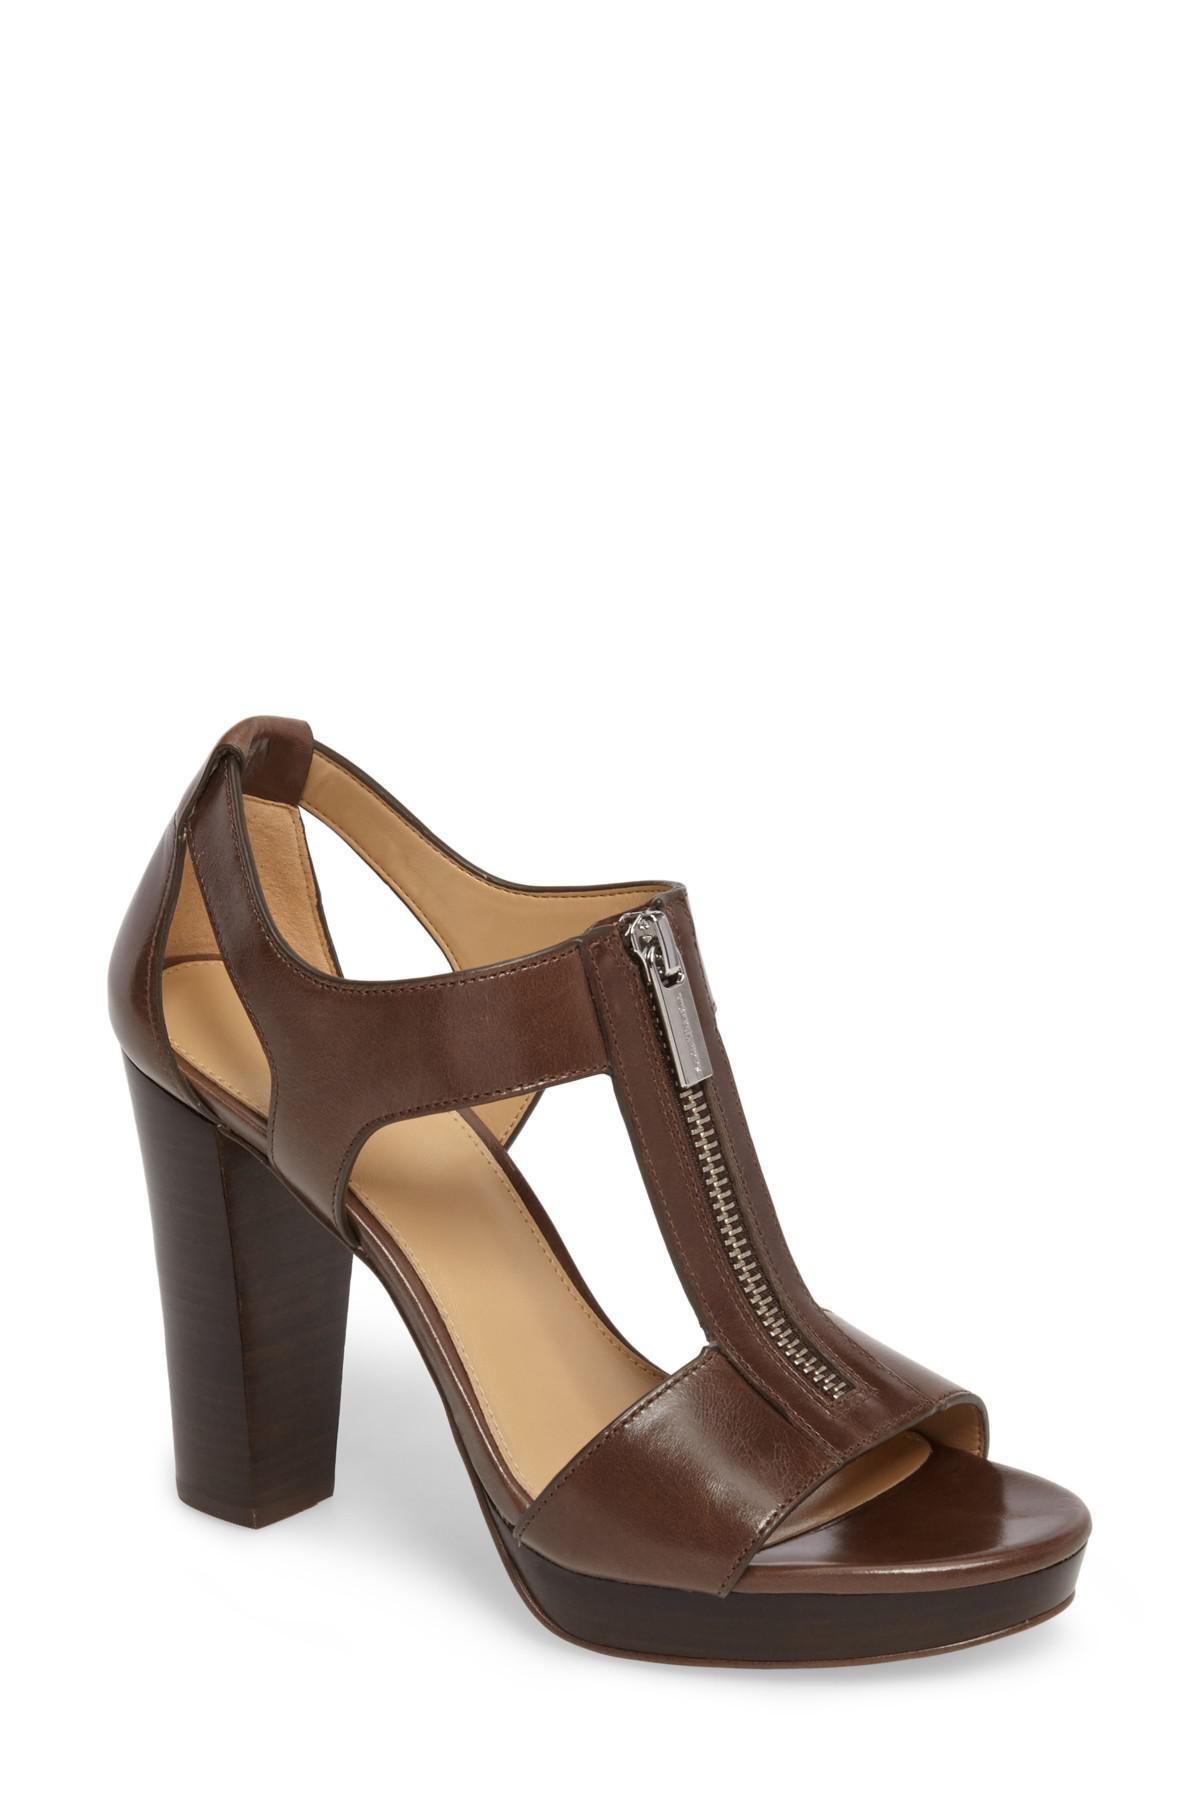 24dee627d7578 Lyst - MICHAEL Michael Kors Berkley Sandal in Brown